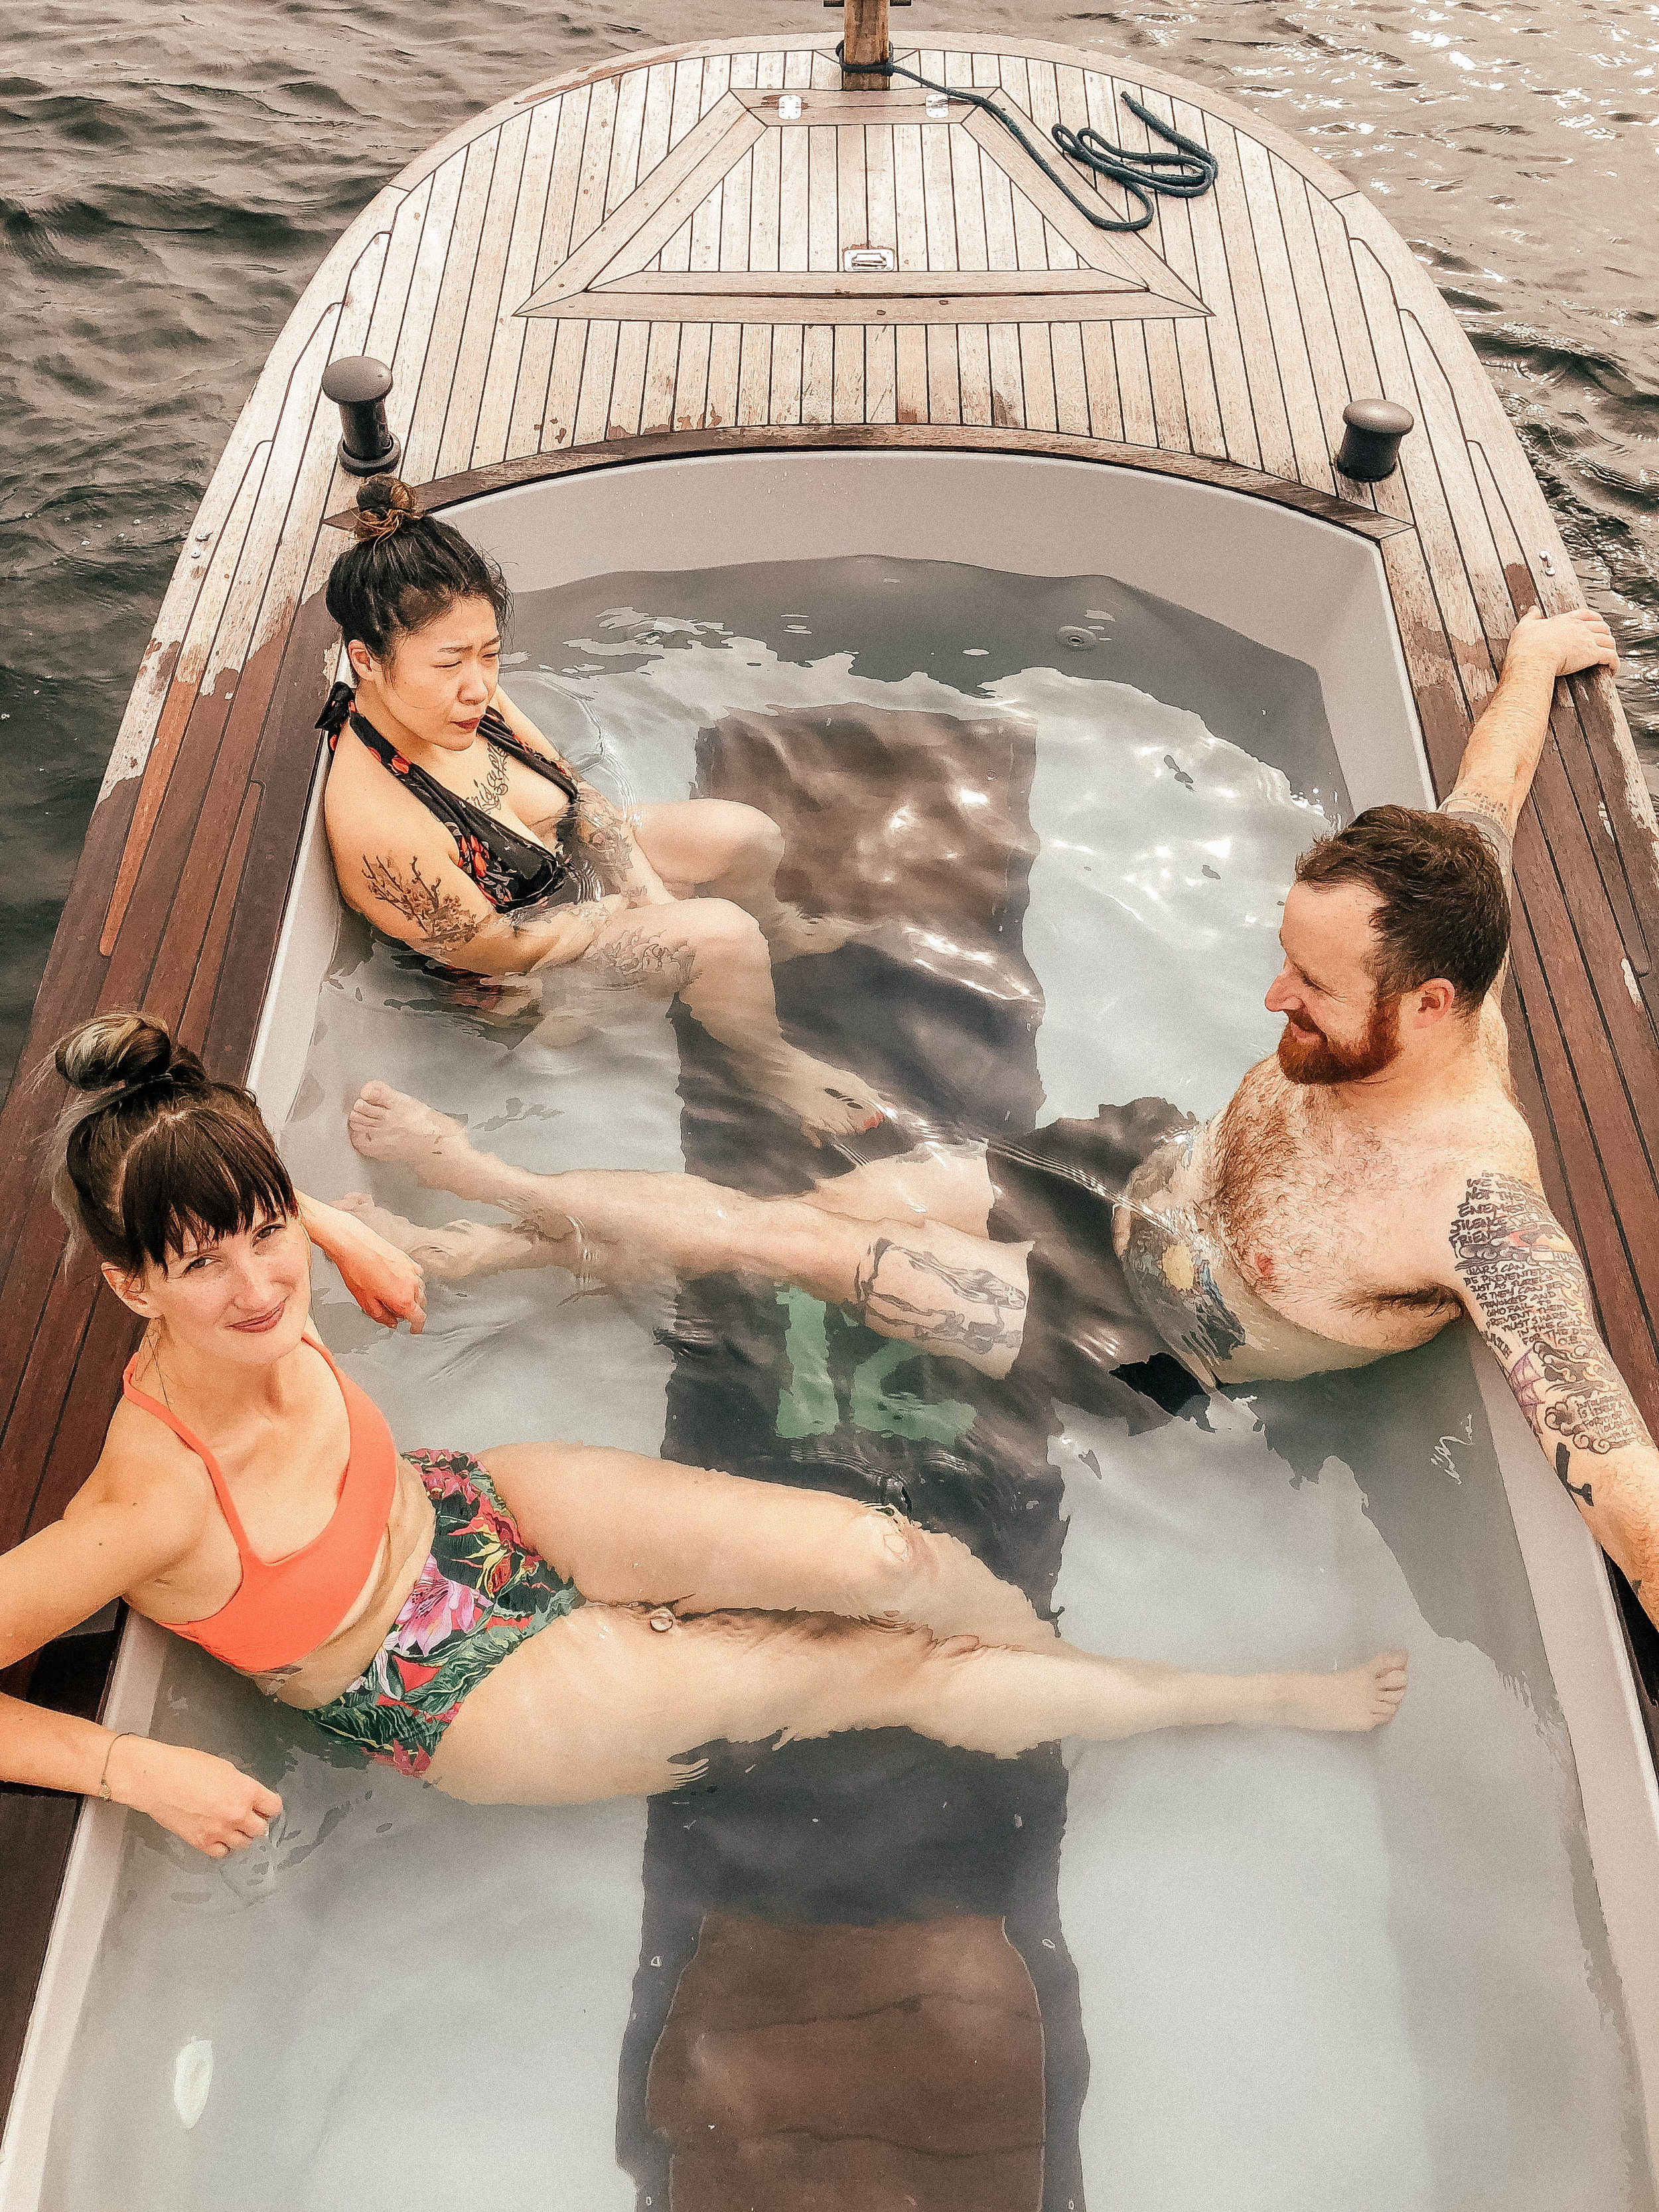 galavantgal_hottub_boat.jpg